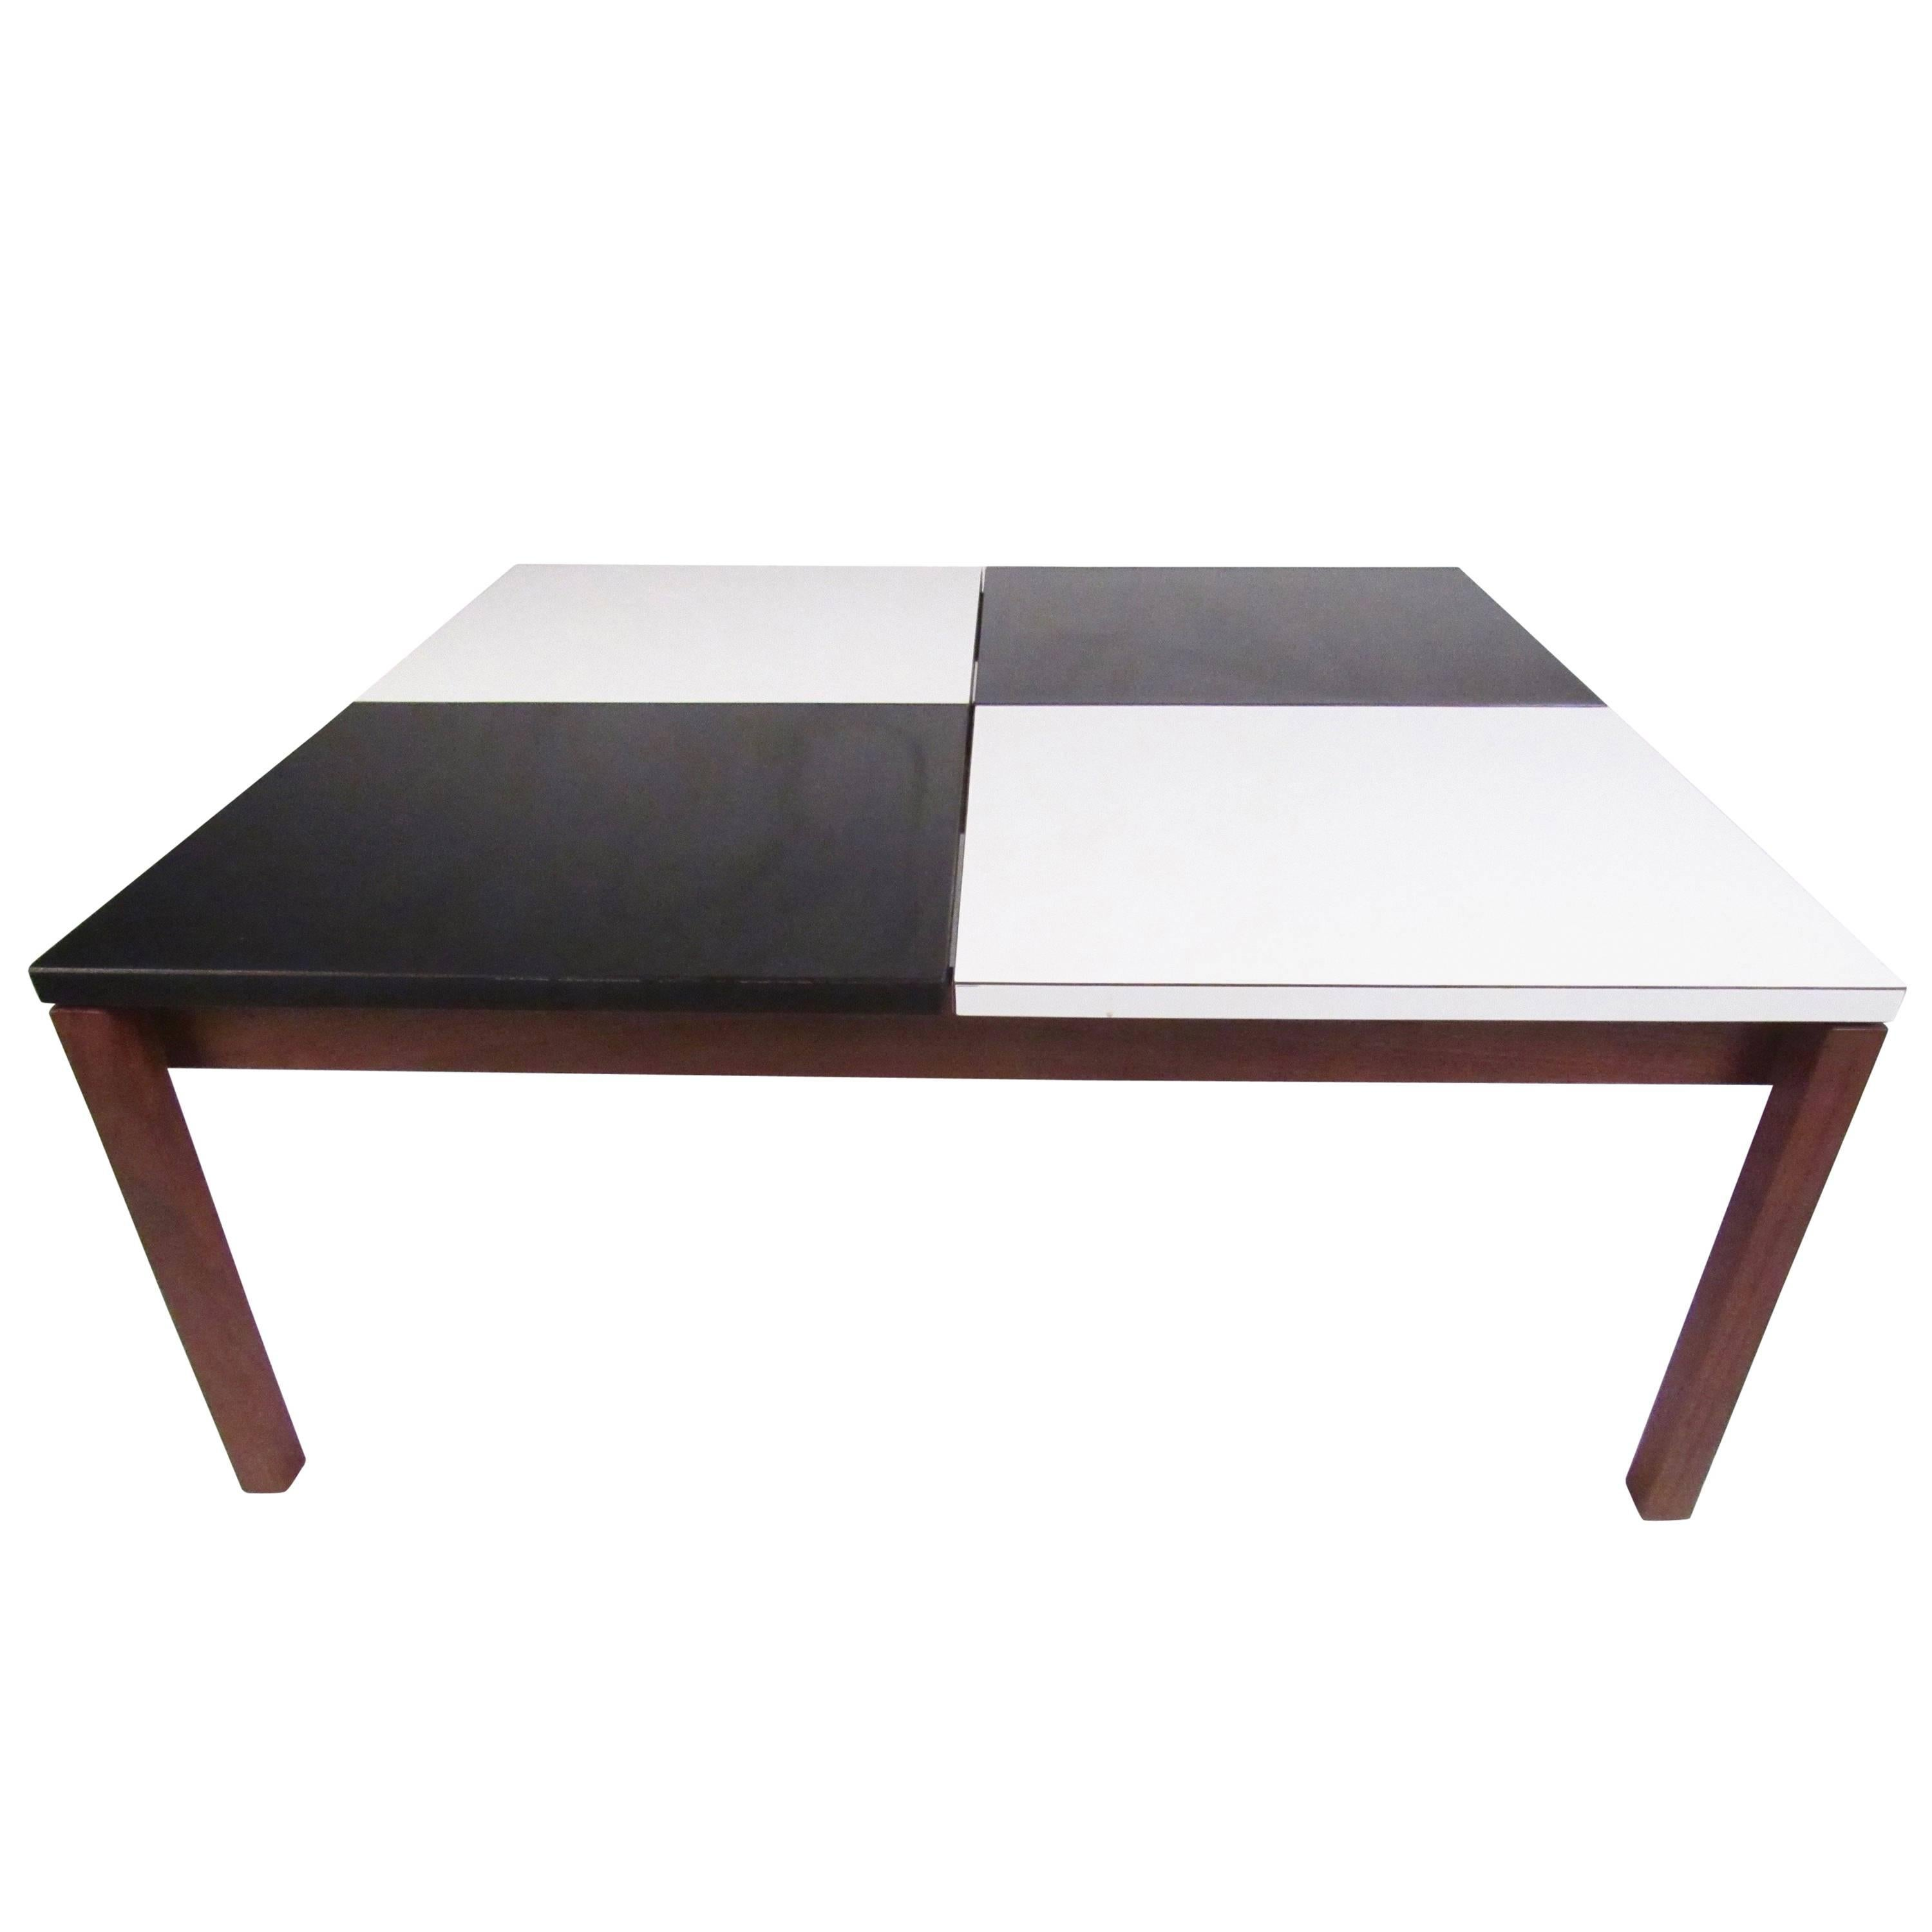 Vintage Modern Black And White Coffee Table By Lewis Butler For Knoll  Associates